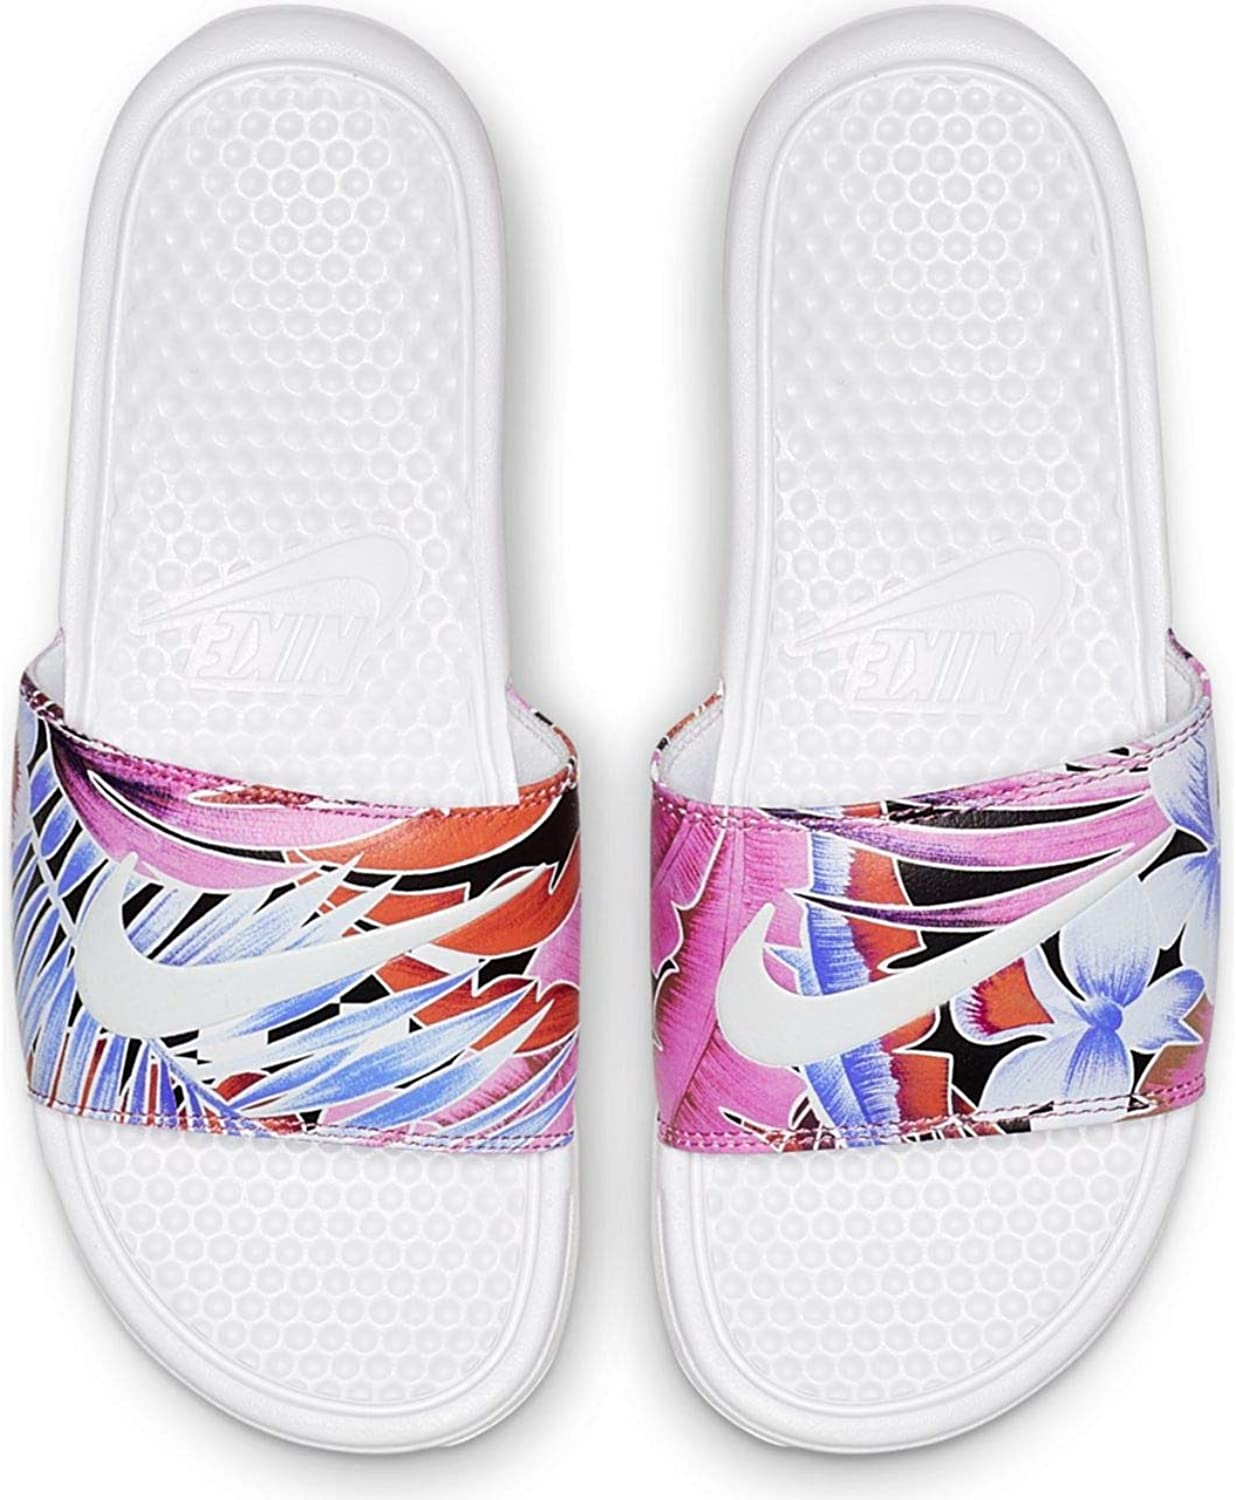 Nike Women's Benassi Just Do It. White Habablack-Ember Glow-Game Royal